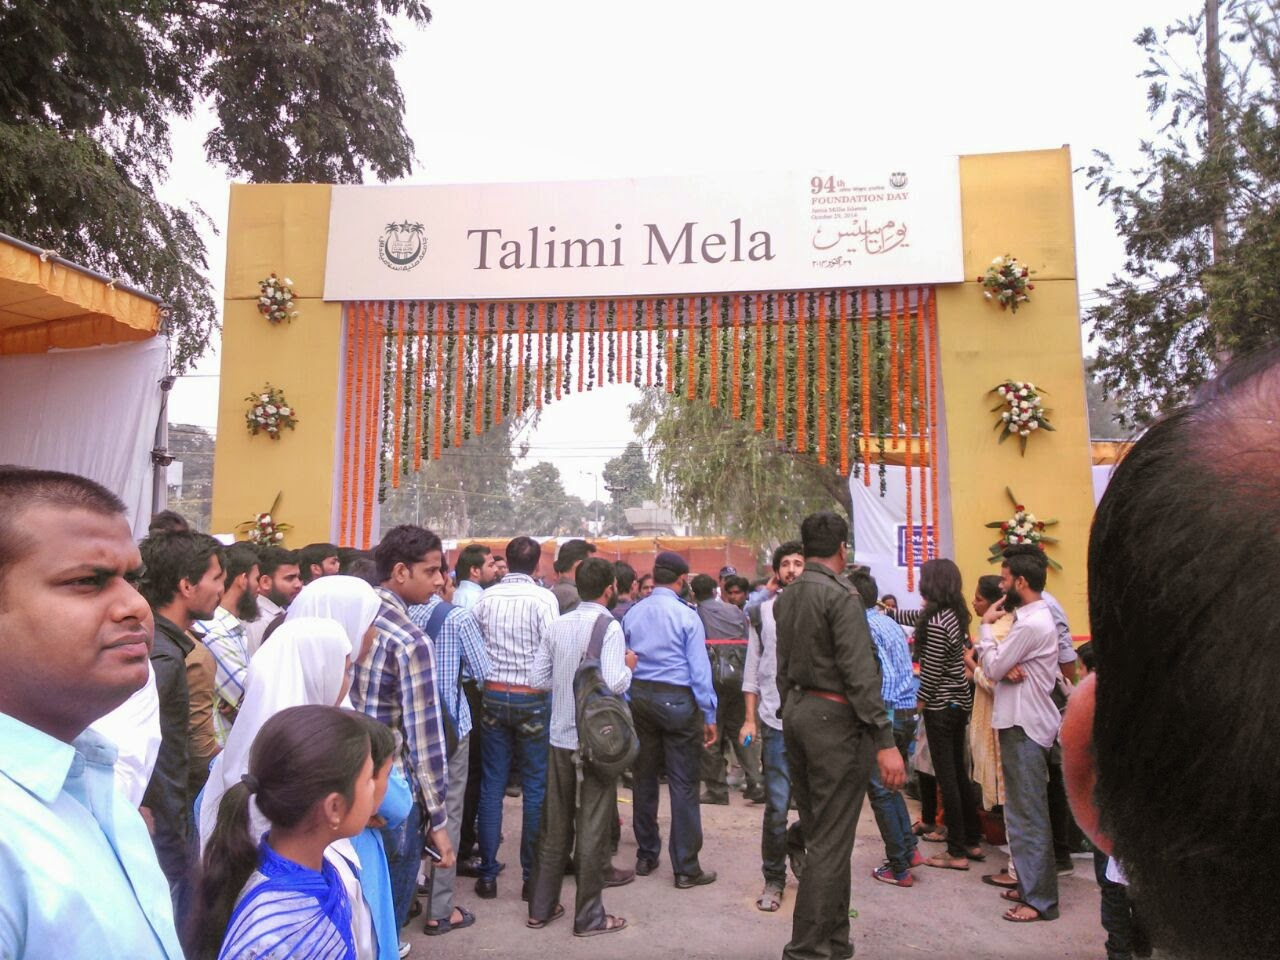 94th Foundation Day Celebrations in Jamia Millia Islamia